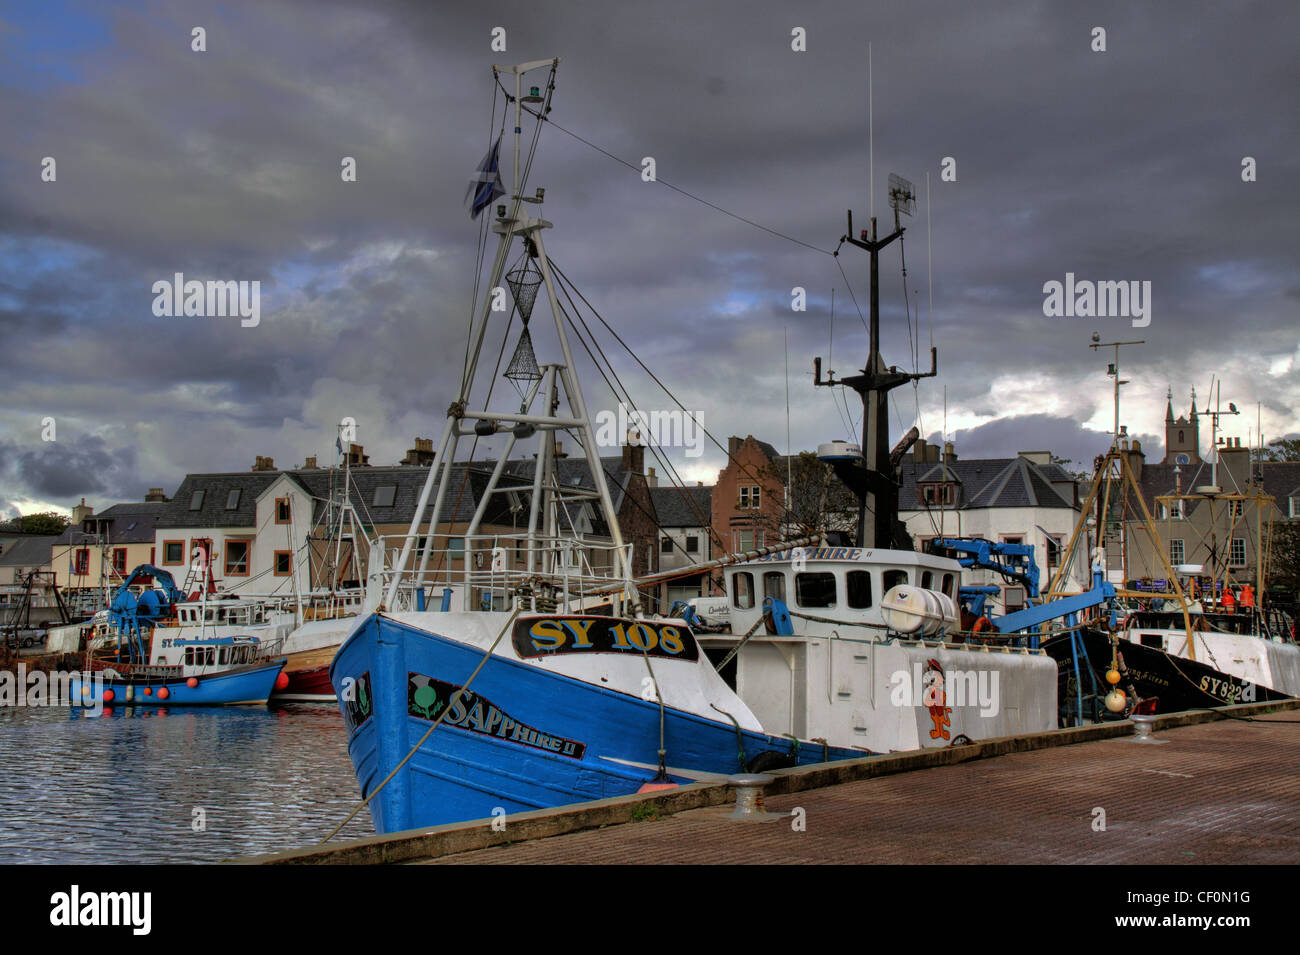 Harbour,SY108,one,of,the,Stornoway,fishing,fleet,Outer,Hebrides,Scotland,UK,gotonysmith,drama,dramatic,sky,blue,boat,boats,ships,vessels,vessel,Steòrnabhagh,Arnish,Point,EU,Fishing,quota,Brexit,freedom,British,waters,territory,territorial,rights,borders,border,sovereignty,territorial waters,gotonysmith,iconic,Alba,Celtic,@HotpixUK,HotpixUK,tour,tourist,attraction,travel,Steòrnabhagh,Na h-Eileanan Siar,Western Isles,Leòdhas,Eilean,CNES,Alba,Buy Pictures of,Buy Images Of,Eilean Leòdhais,Stornoway town